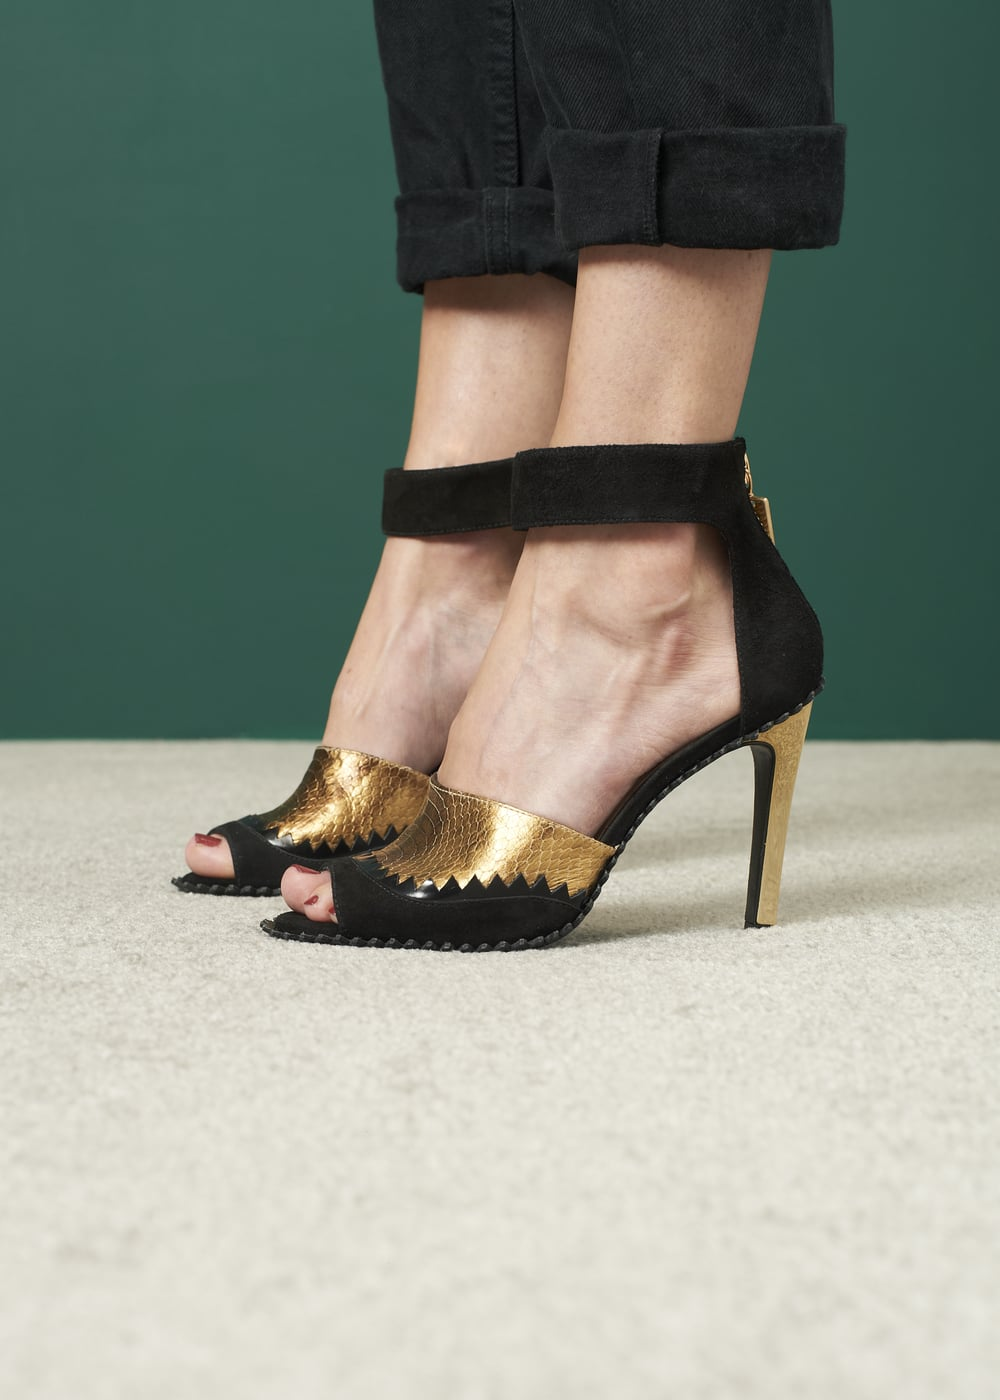 KAT MACONIE  - FERN HEELS in BLACK & GOLD